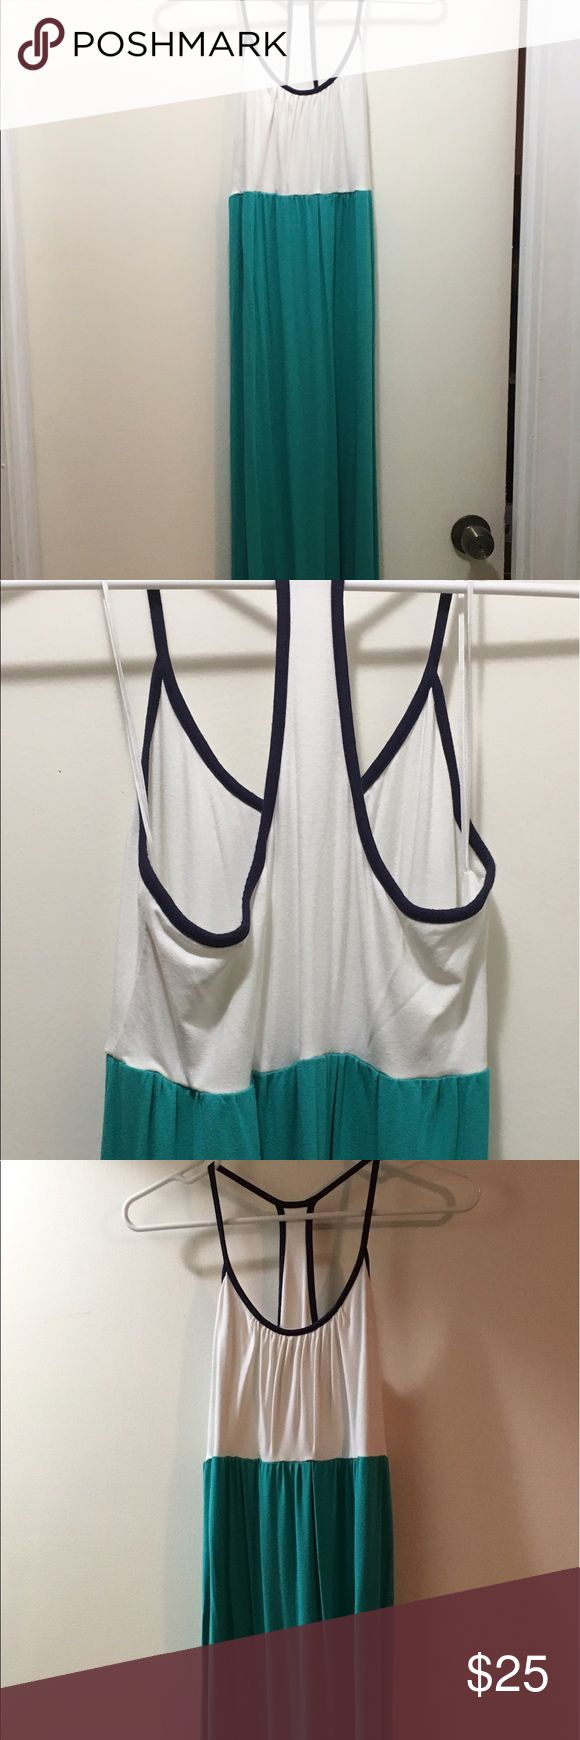 White and teal maxi dress Excellent condition. Super stretchy long maxi dress. Worn twice. Size small. Kenar Dresses Maxi